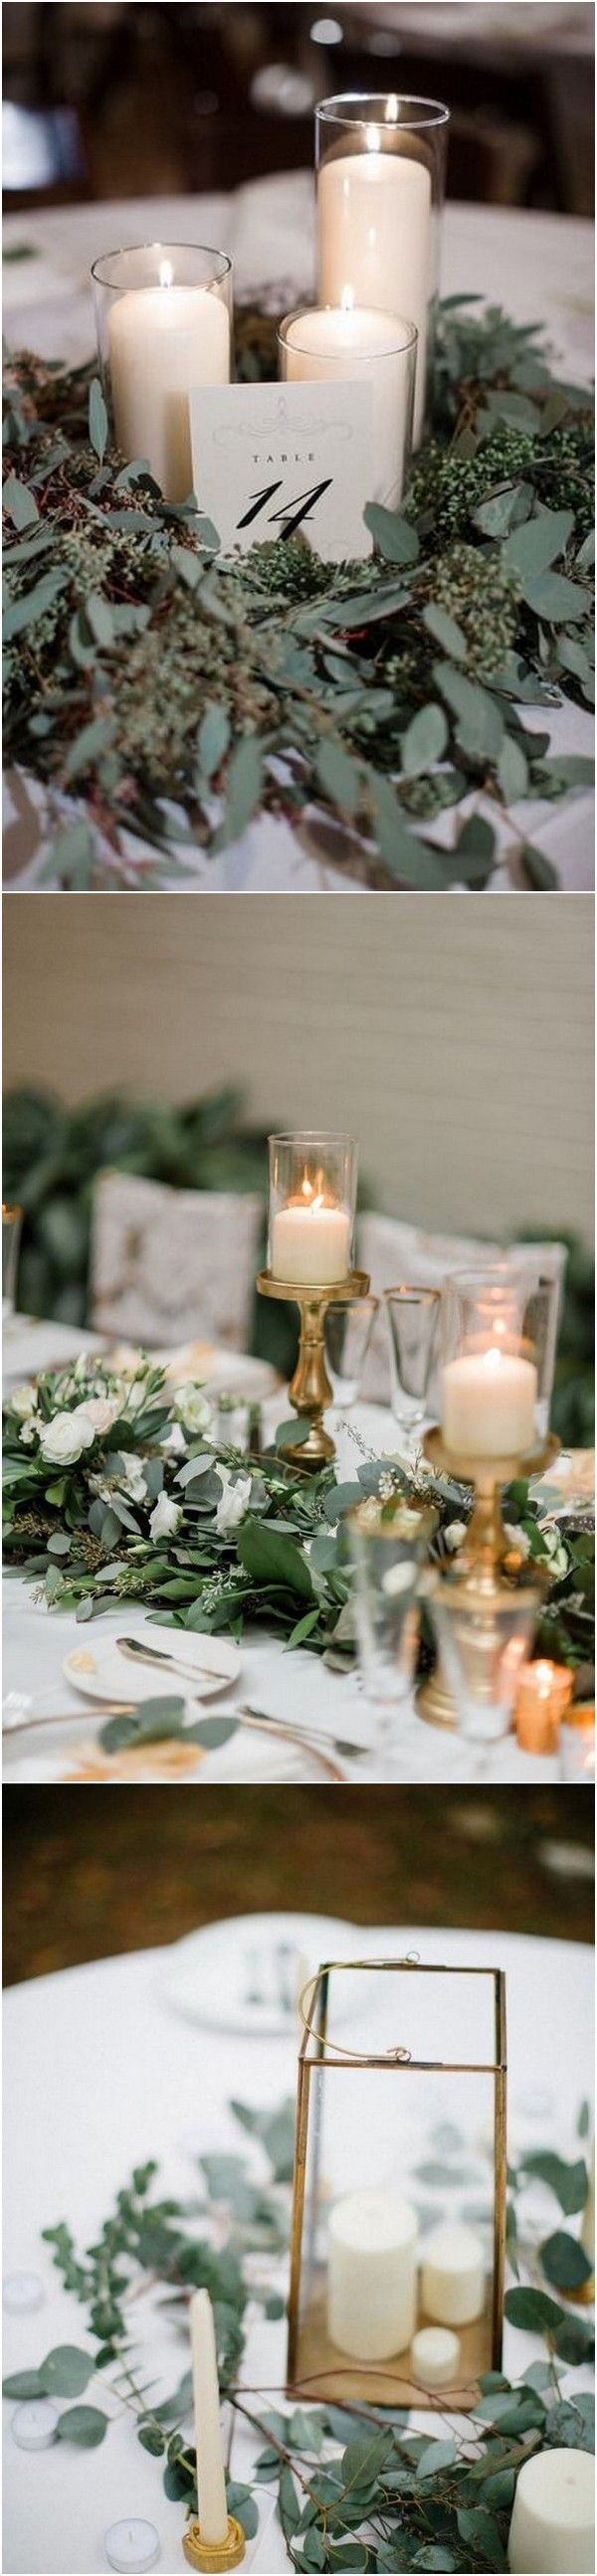 greenery wedding centerpieces with candles 2 #weddingtrends #weddingideas #weddingdecor #weddingcenterpiece #greenerywedding